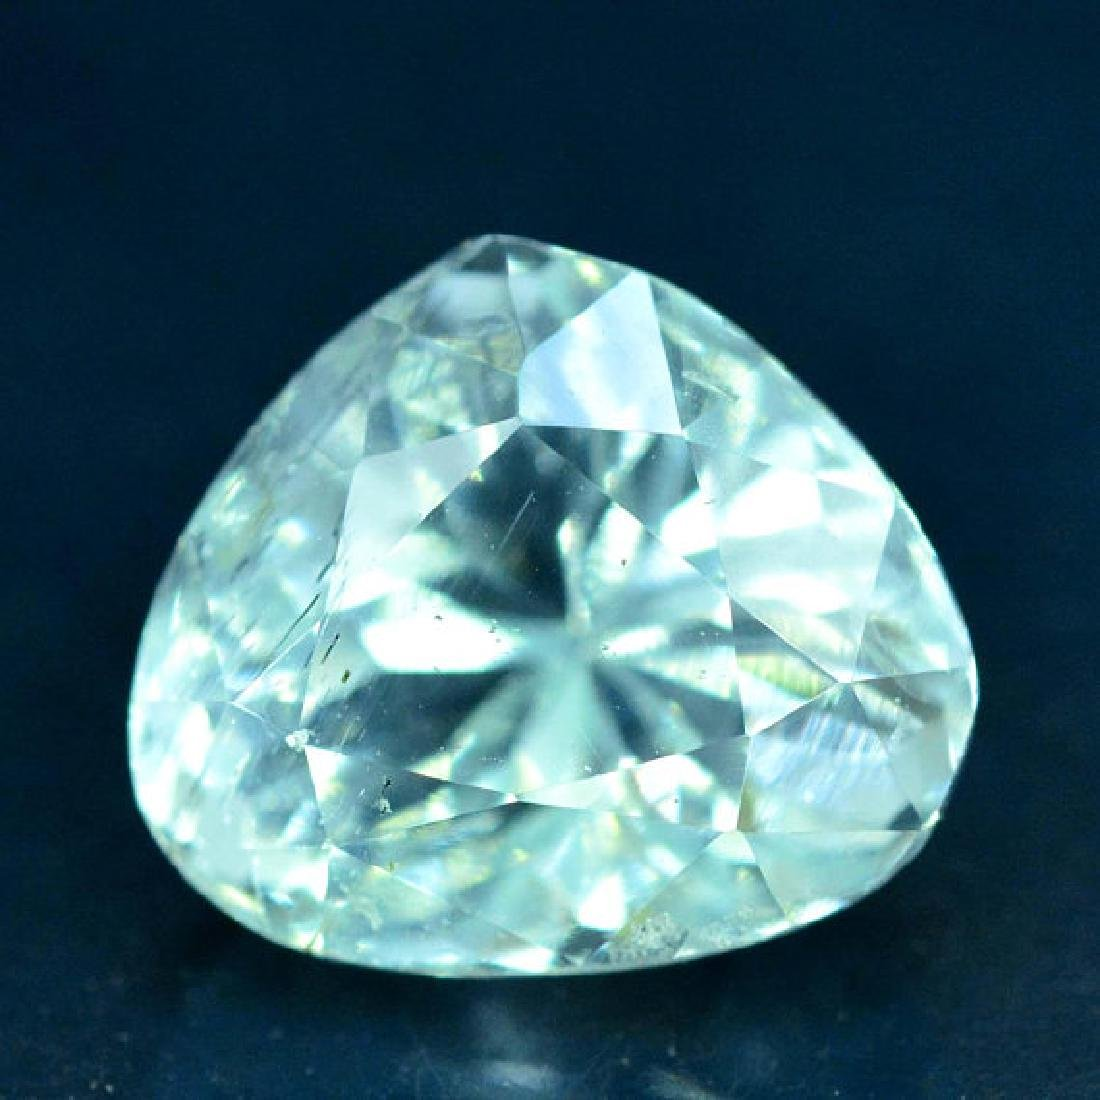 4.50 cts Untreated Aquamarine Gemstone from Pakistan - - 2